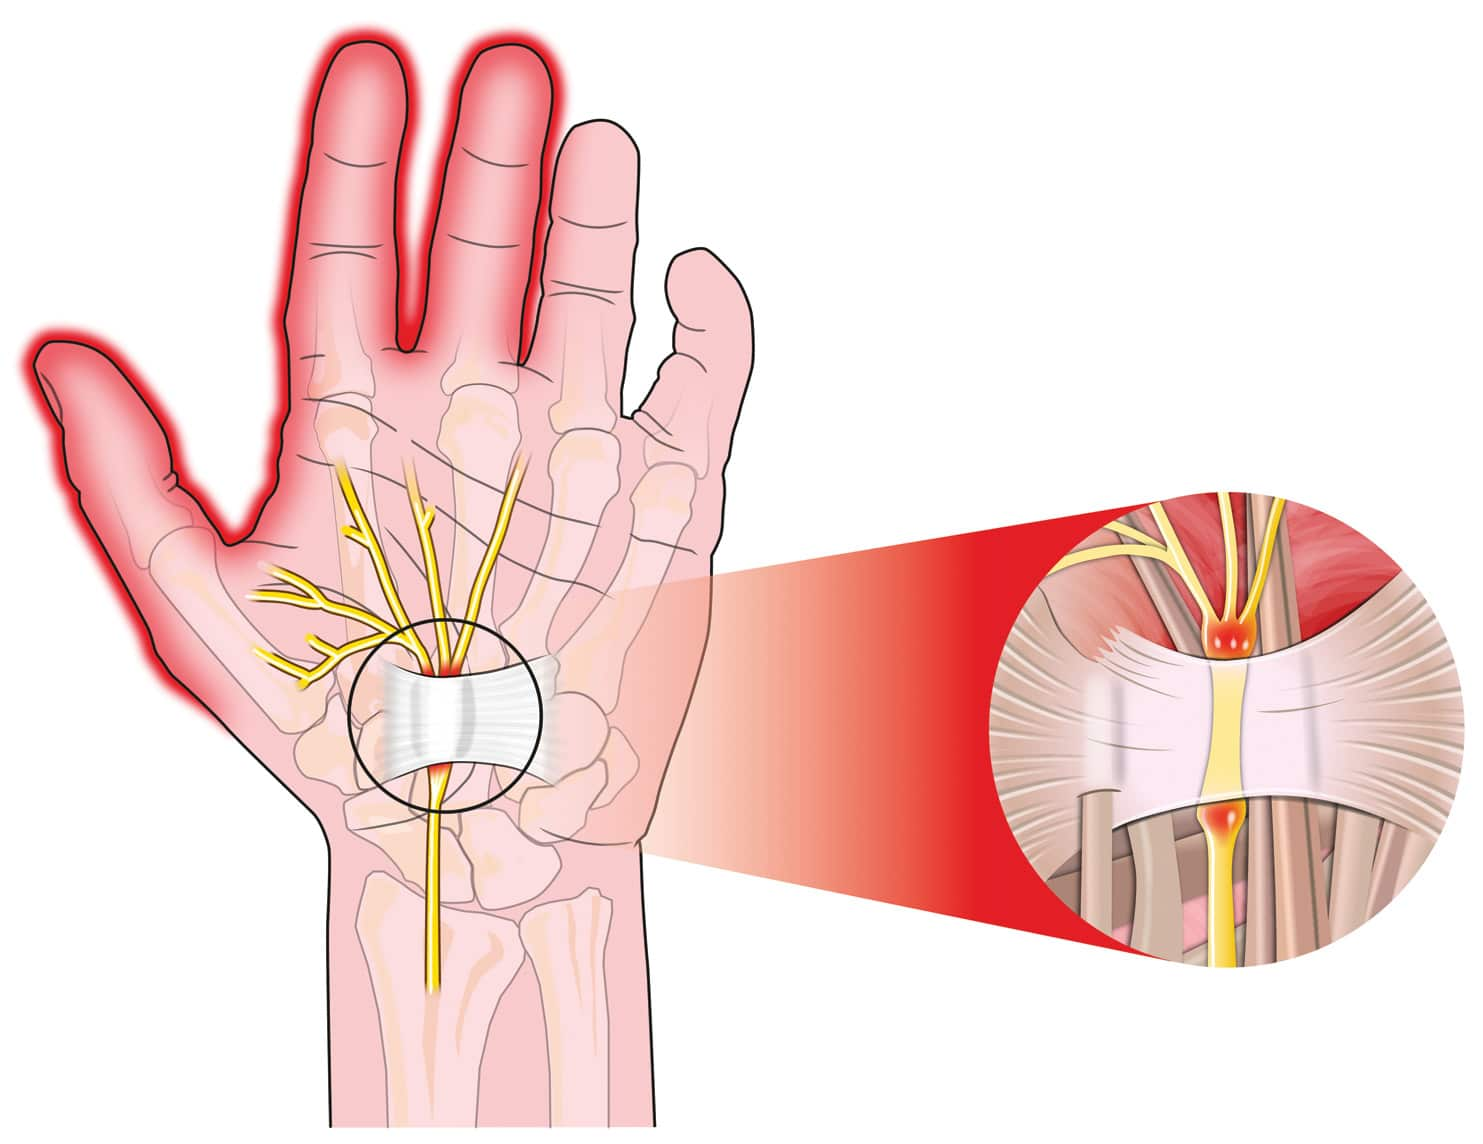 Watch out for Carpal Tunnel Syndrome